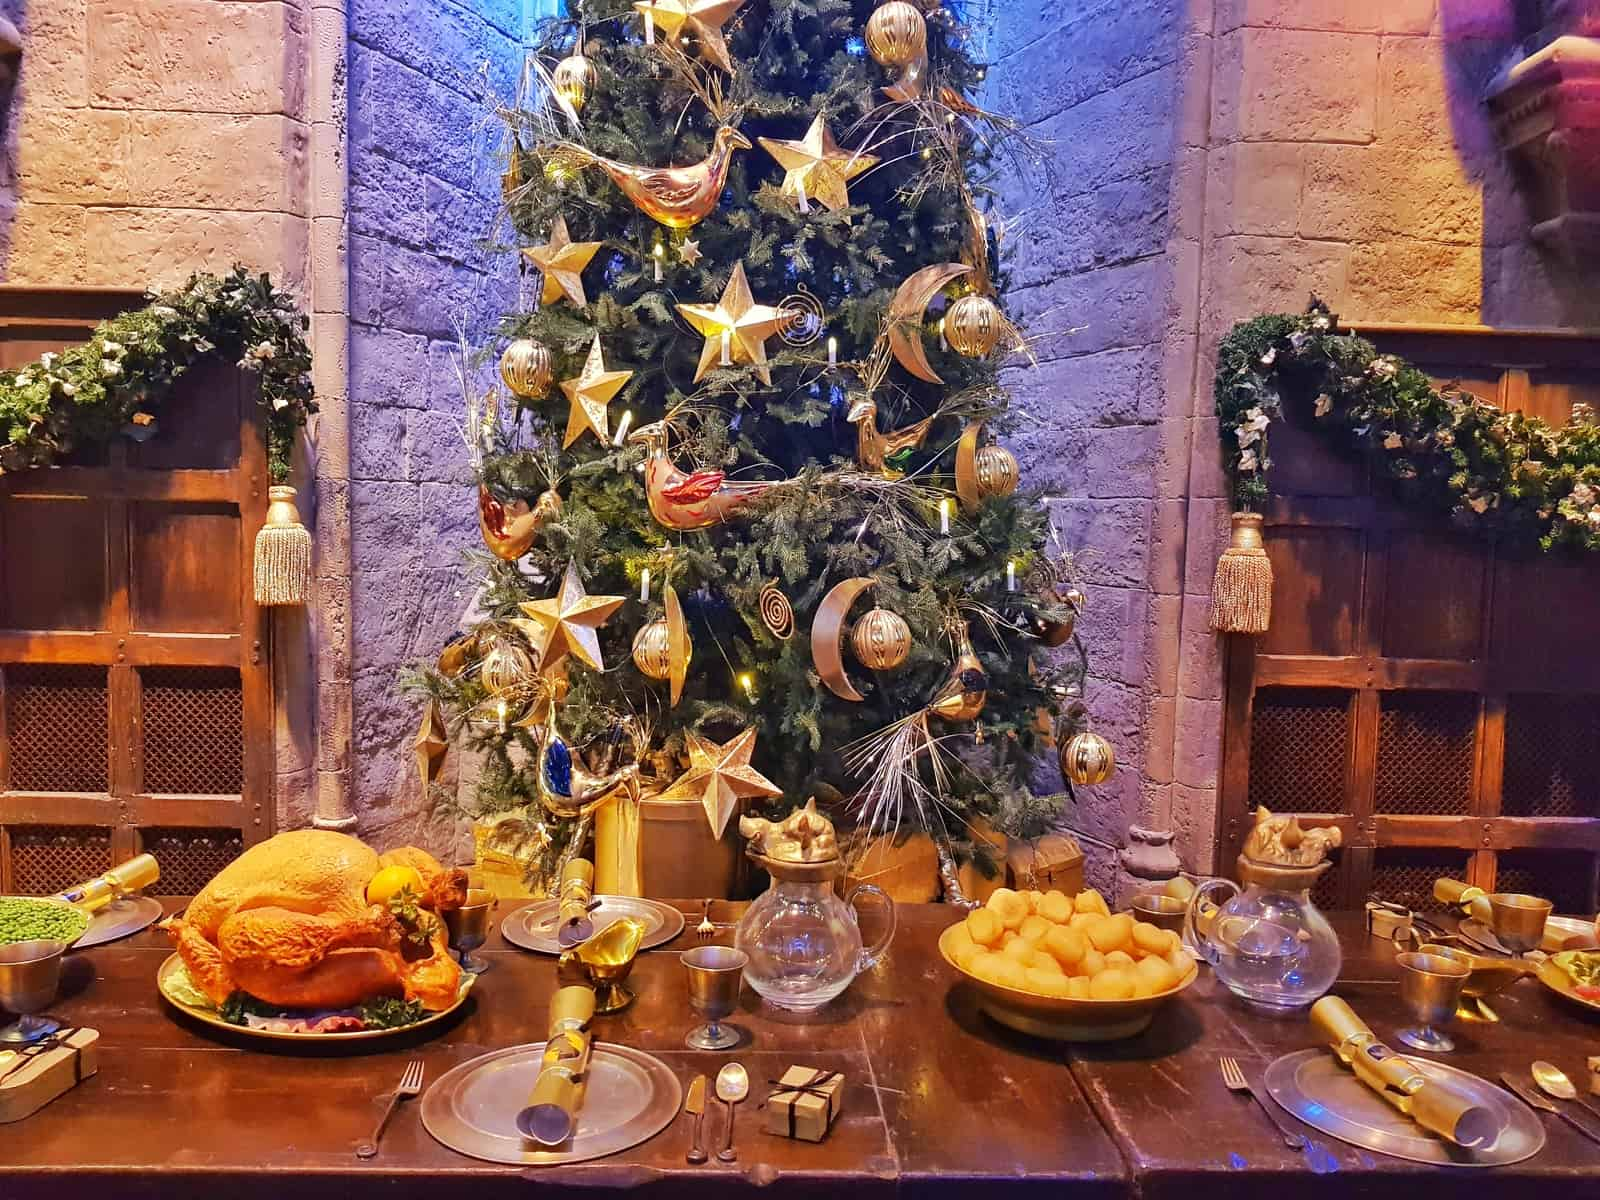 Christmas tree and table in the Hogwarts great hall